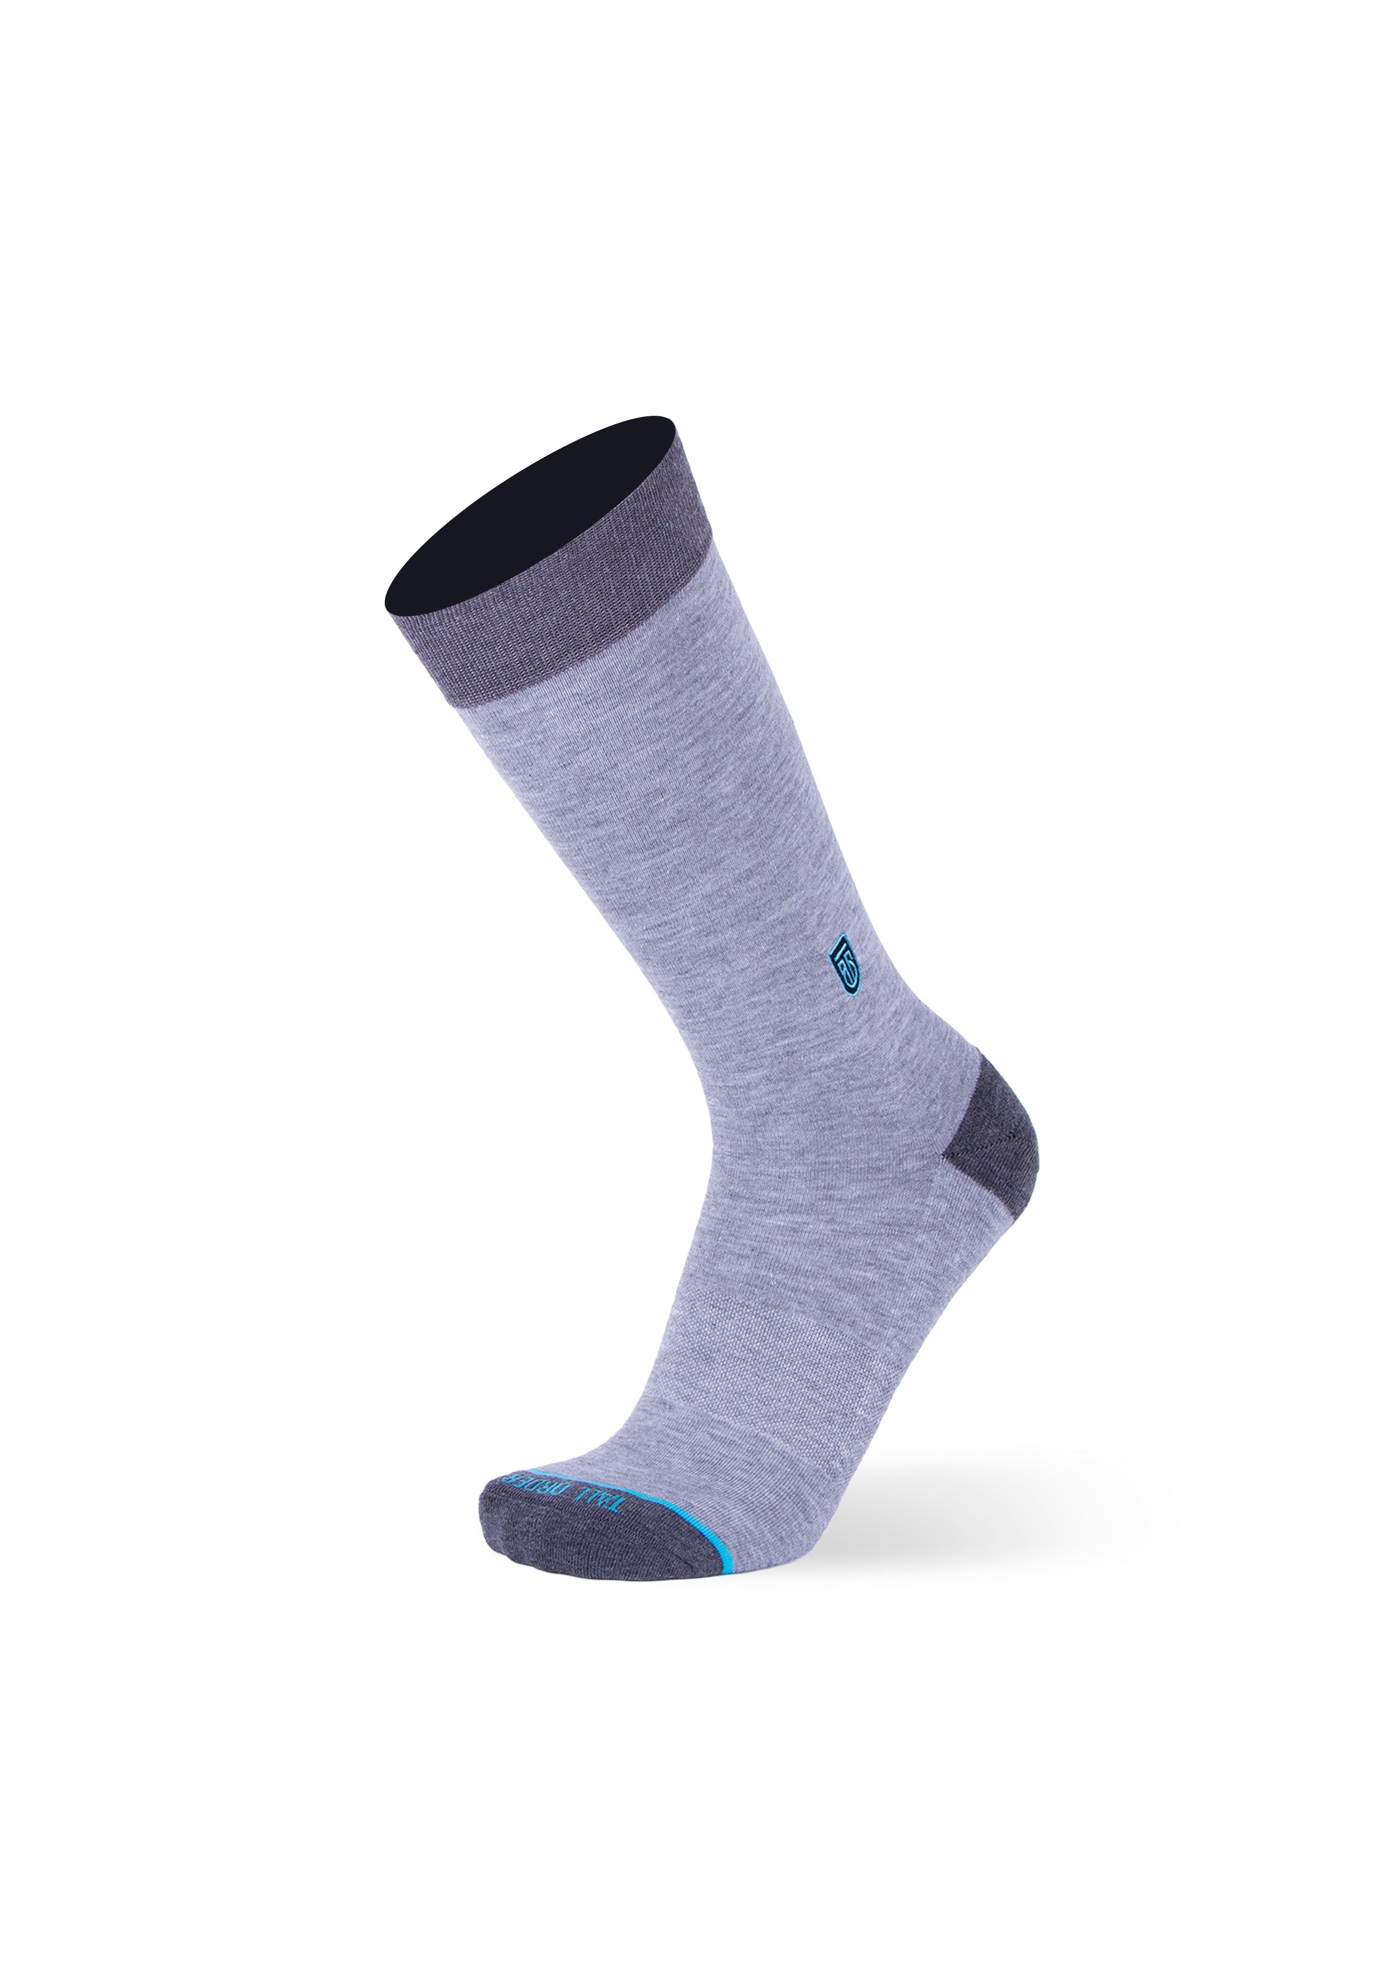 The Heather Grey Socks,